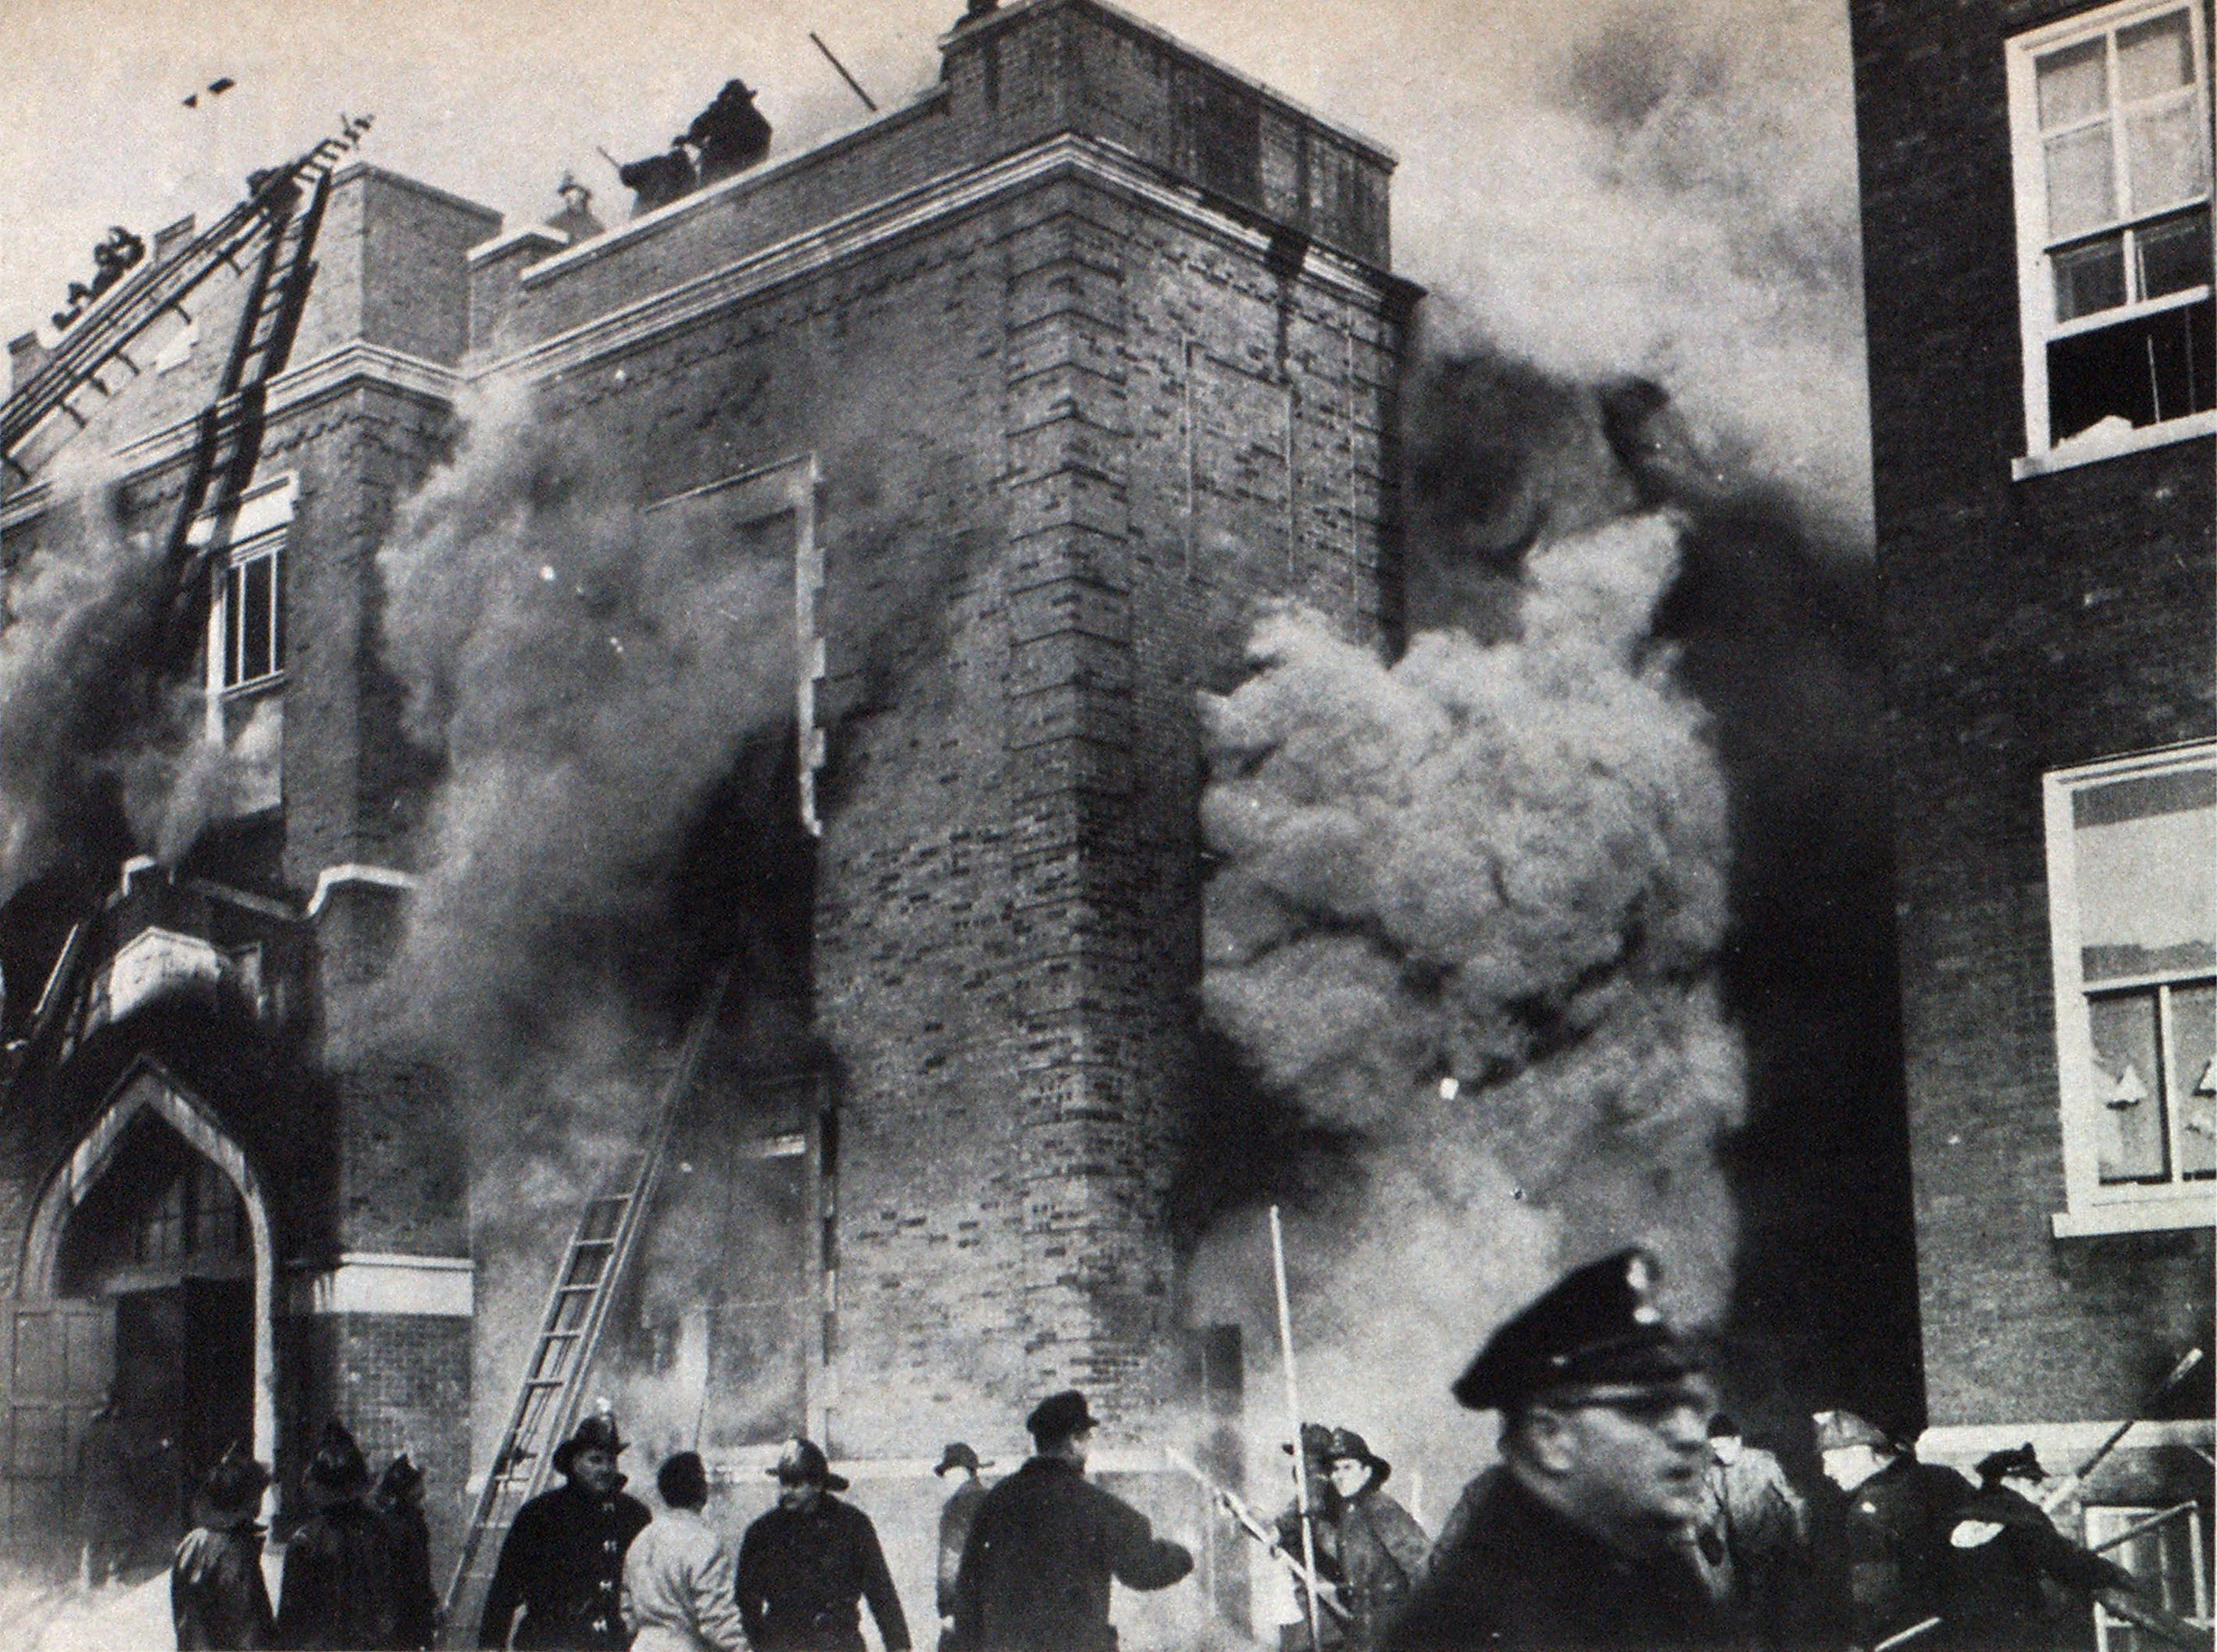 Smoke pushes through windows of Our Lady of the Angeles School in Chicago during fire that killed 95 children and nuns